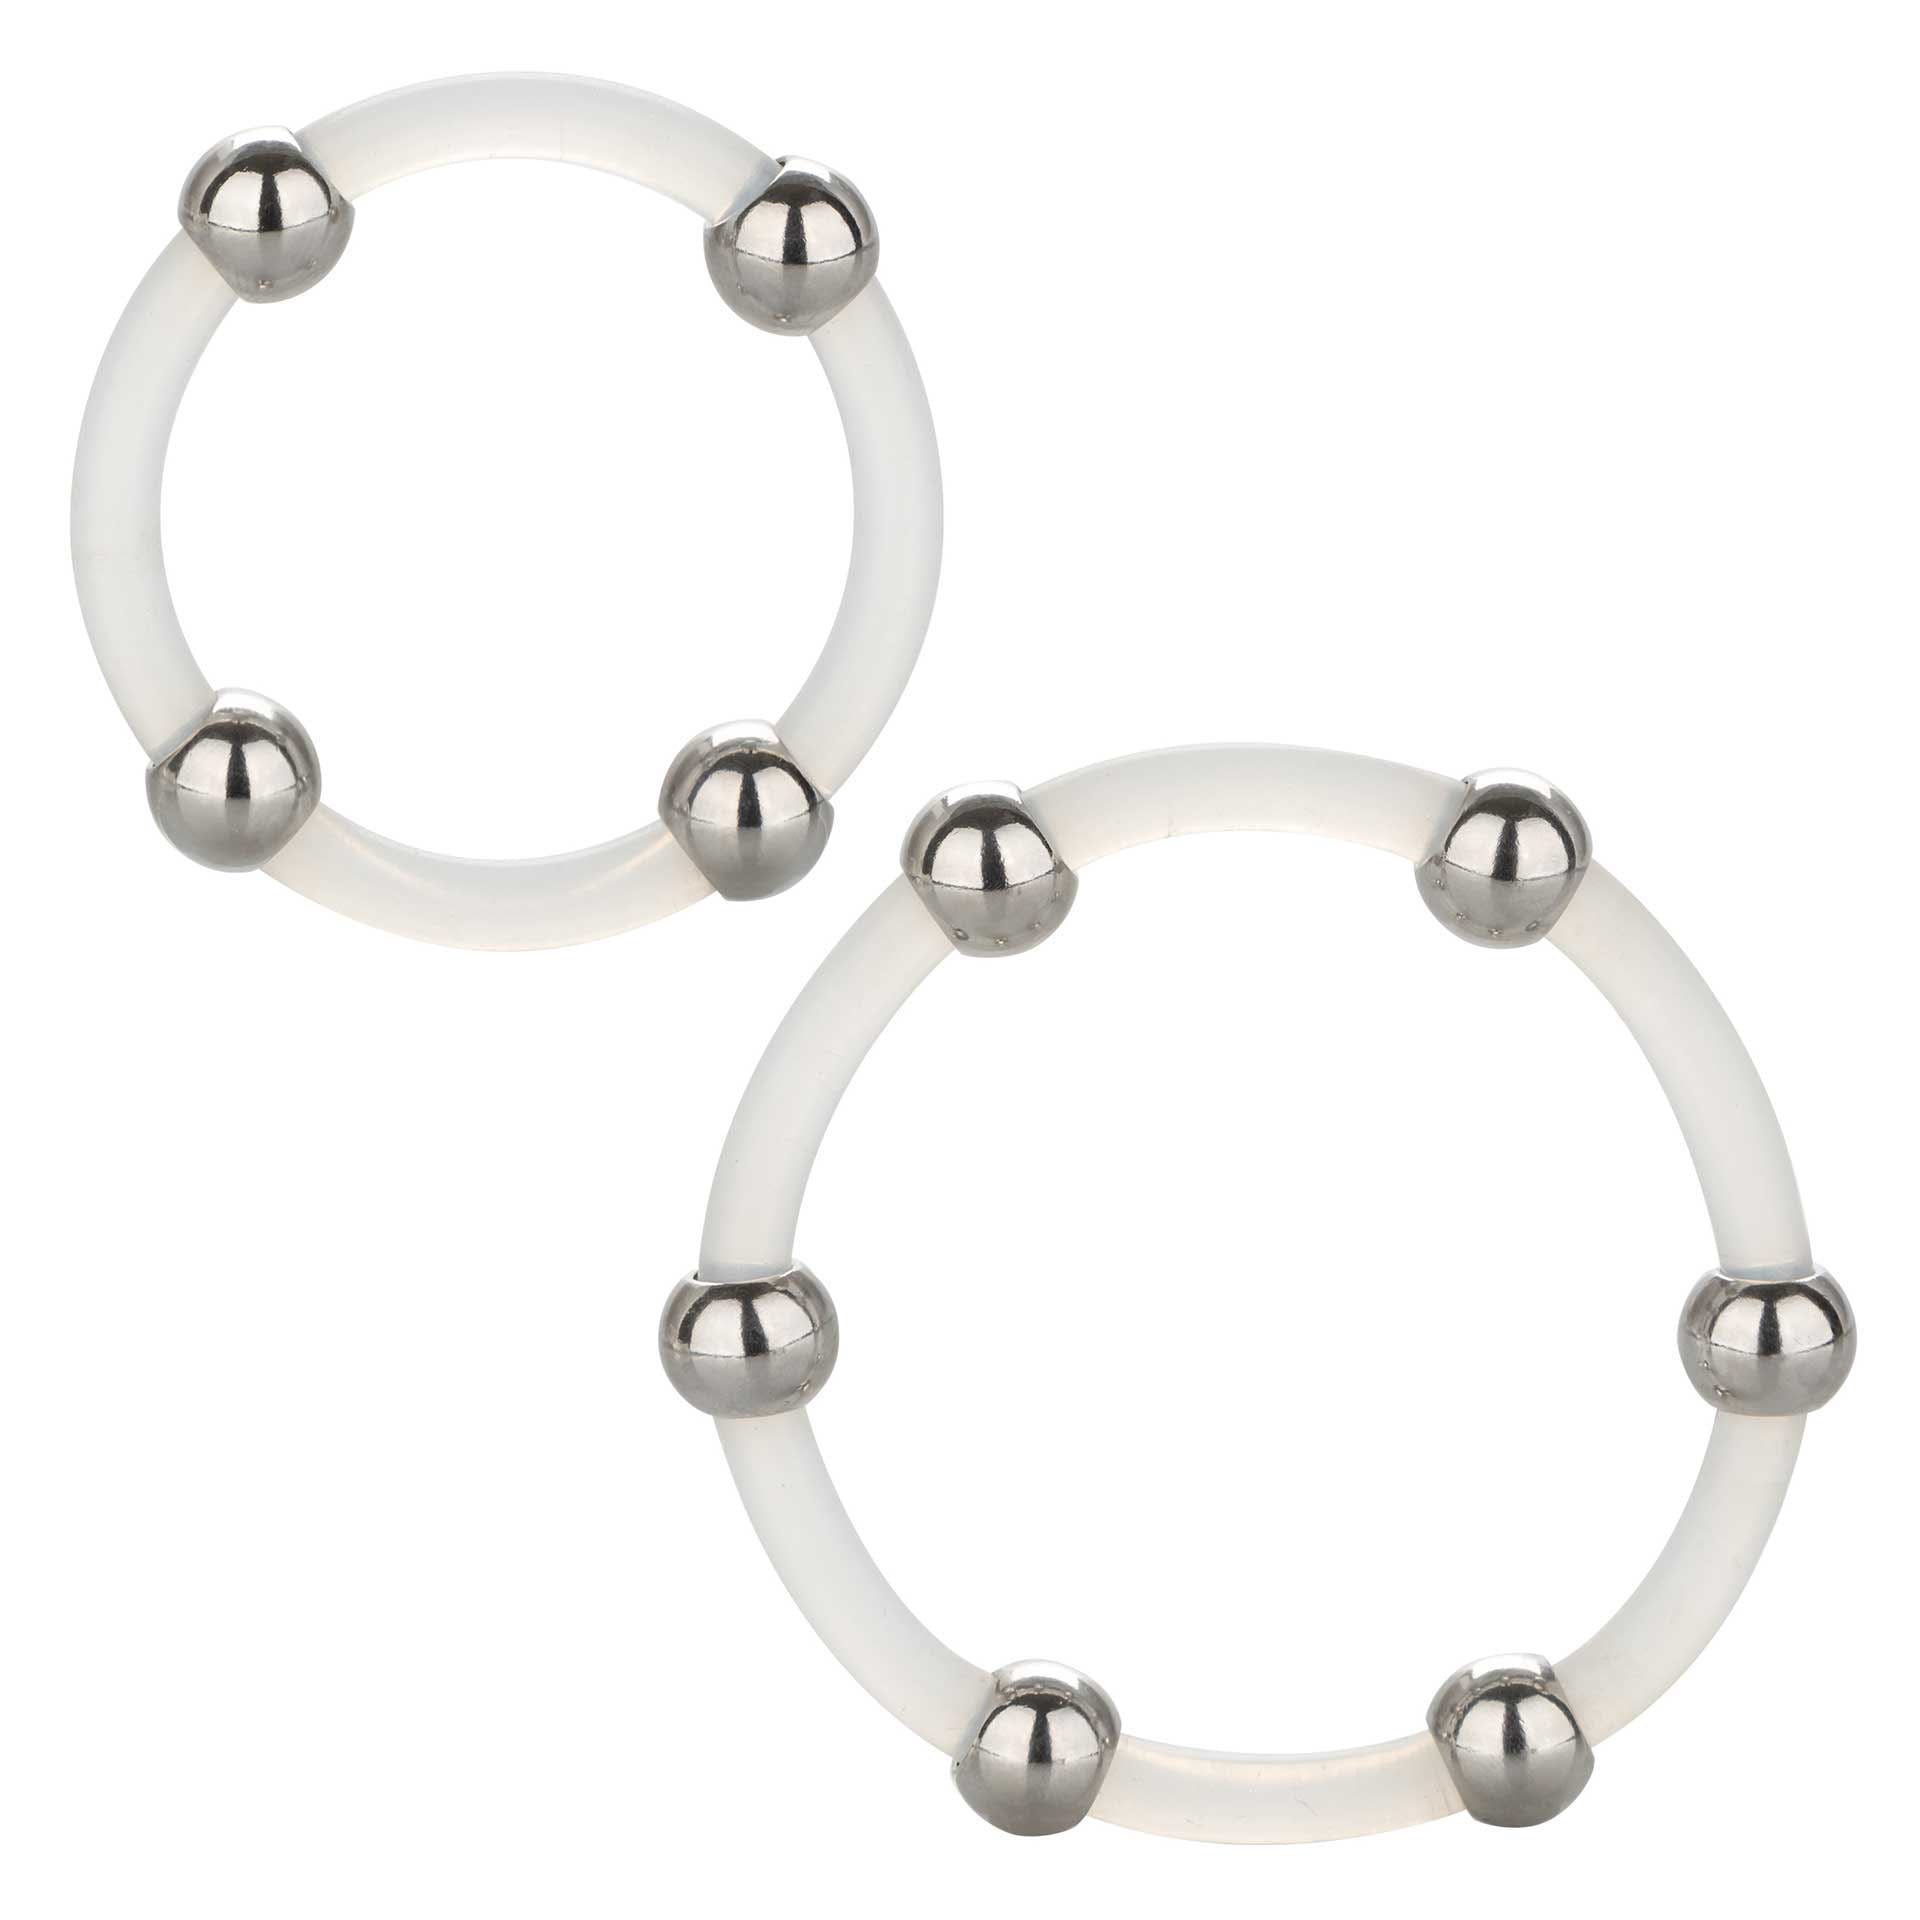 Steel Beaded Silicone Ring Set > Sex Toys For Men > Love Rings Love Rings, Male, NEWLY-IMPORTED, Silicone - So Luxe Lingerie